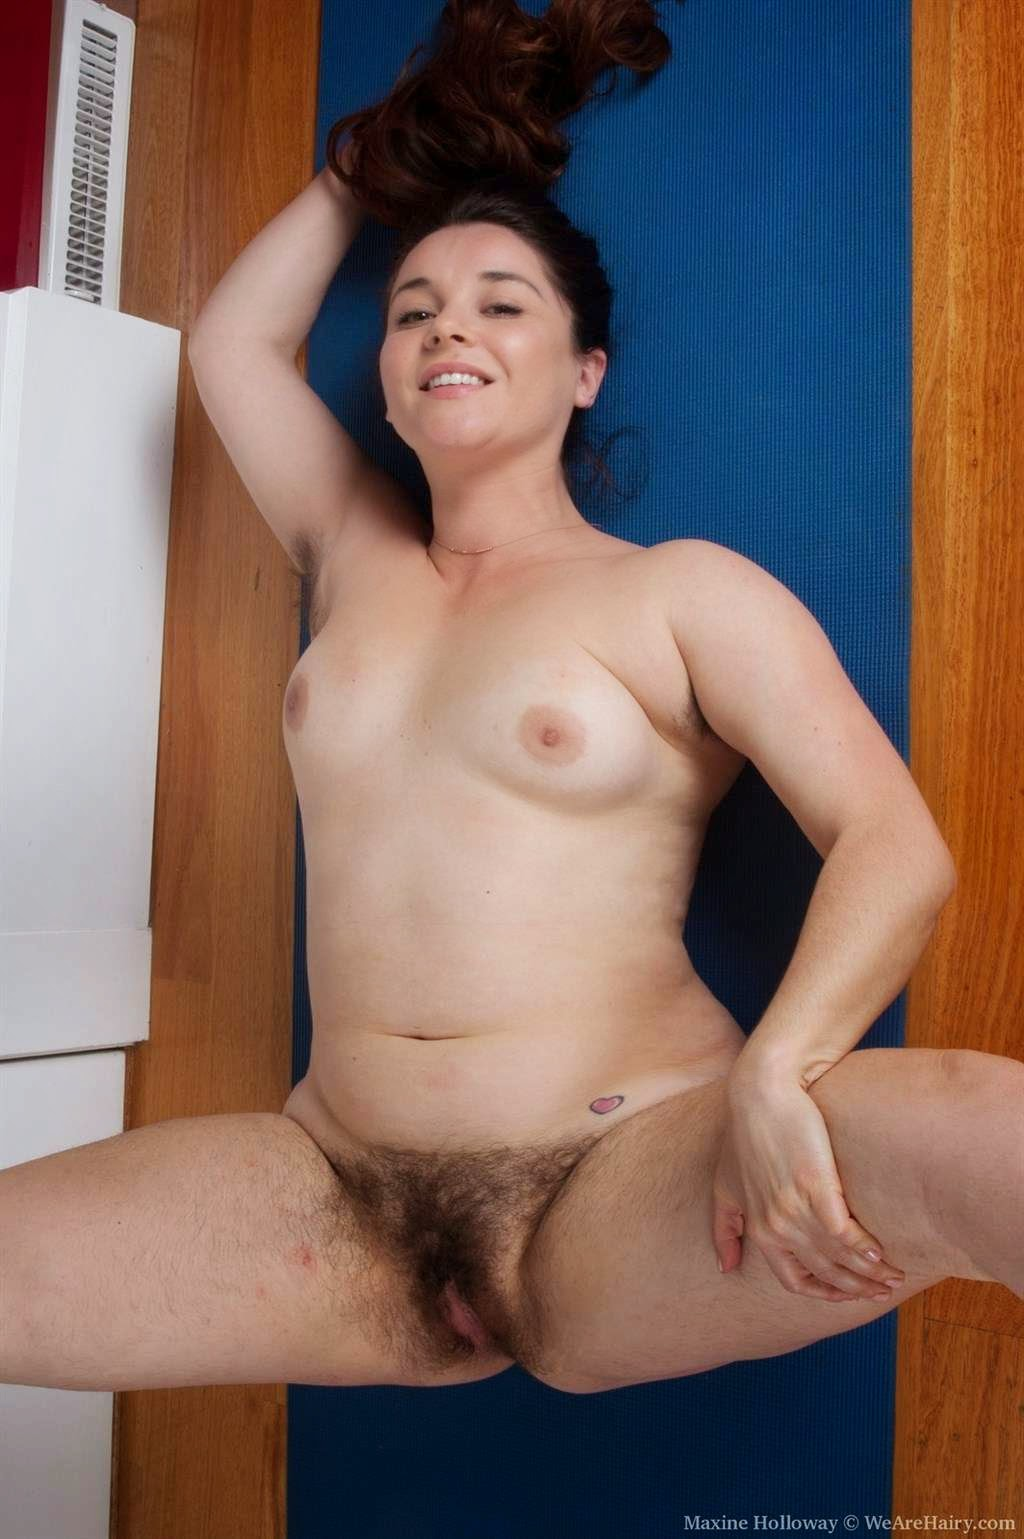 Chubby hairy mature men nudes